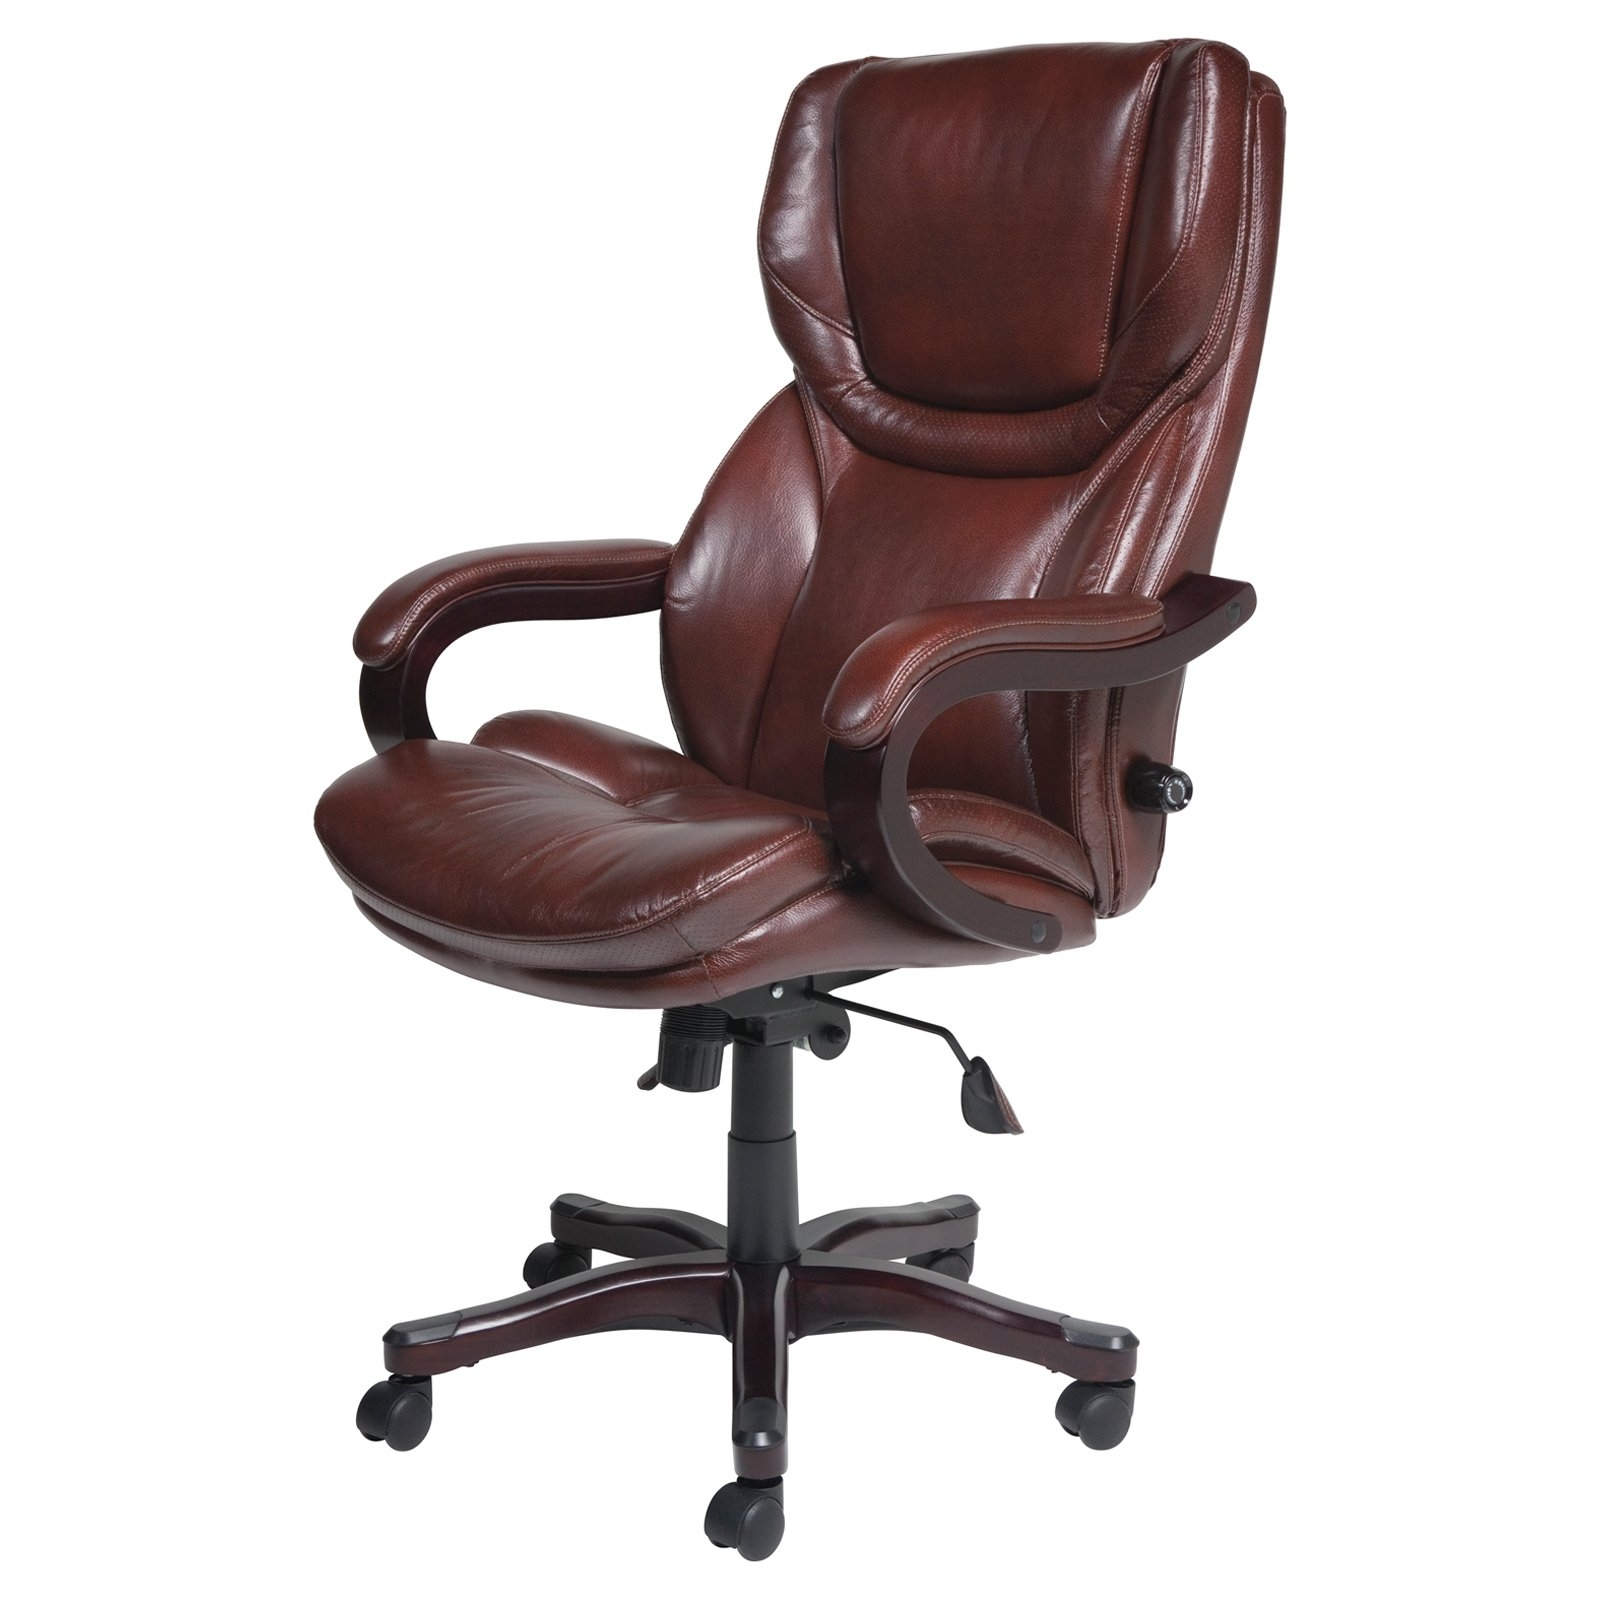 Most Recent Chair : Ergonomic Black Leather Executive Office Chair Verona For High End Executive Office Chairs (View 15 of 20)